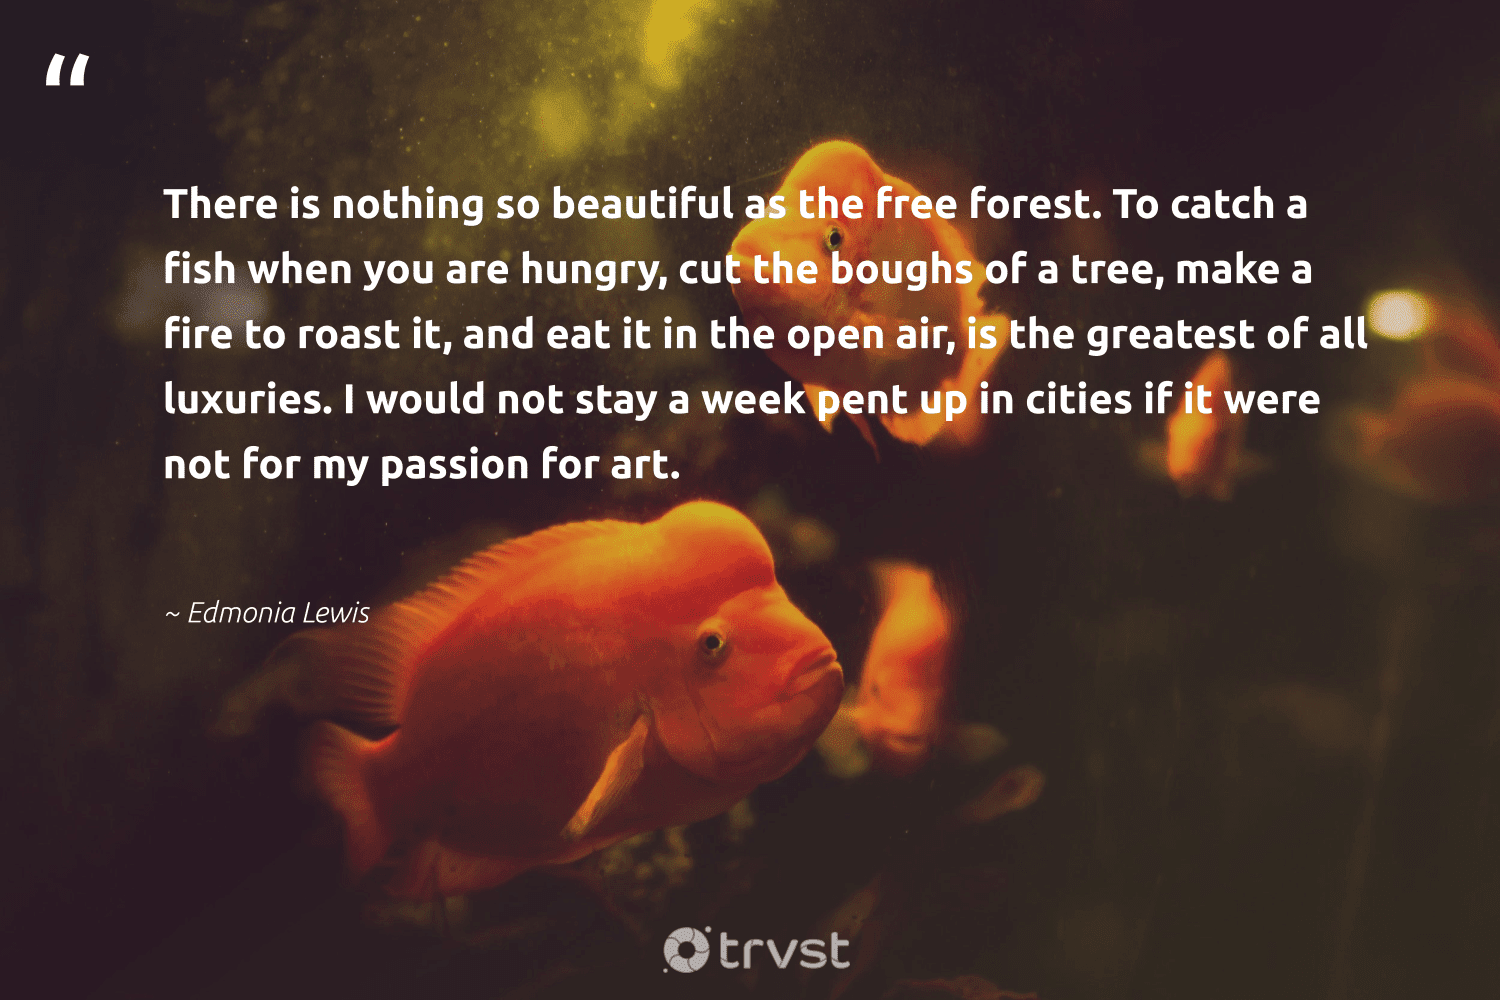 """""""There is nothing so beautiful as the free forest. To catch a fish when you are hungry, cut the boughs of a tree, make a fire to roast it, and eat it in the open air, is the greatest of all luxuries. I would not stay a week pent up in cities if it were not for my passion for art.""""  - Edmonia Lewis #trvst #quotes #forest #fish #hungry #passion #amazonforest #marinelife #earth #impact #plantatree #oceans"""